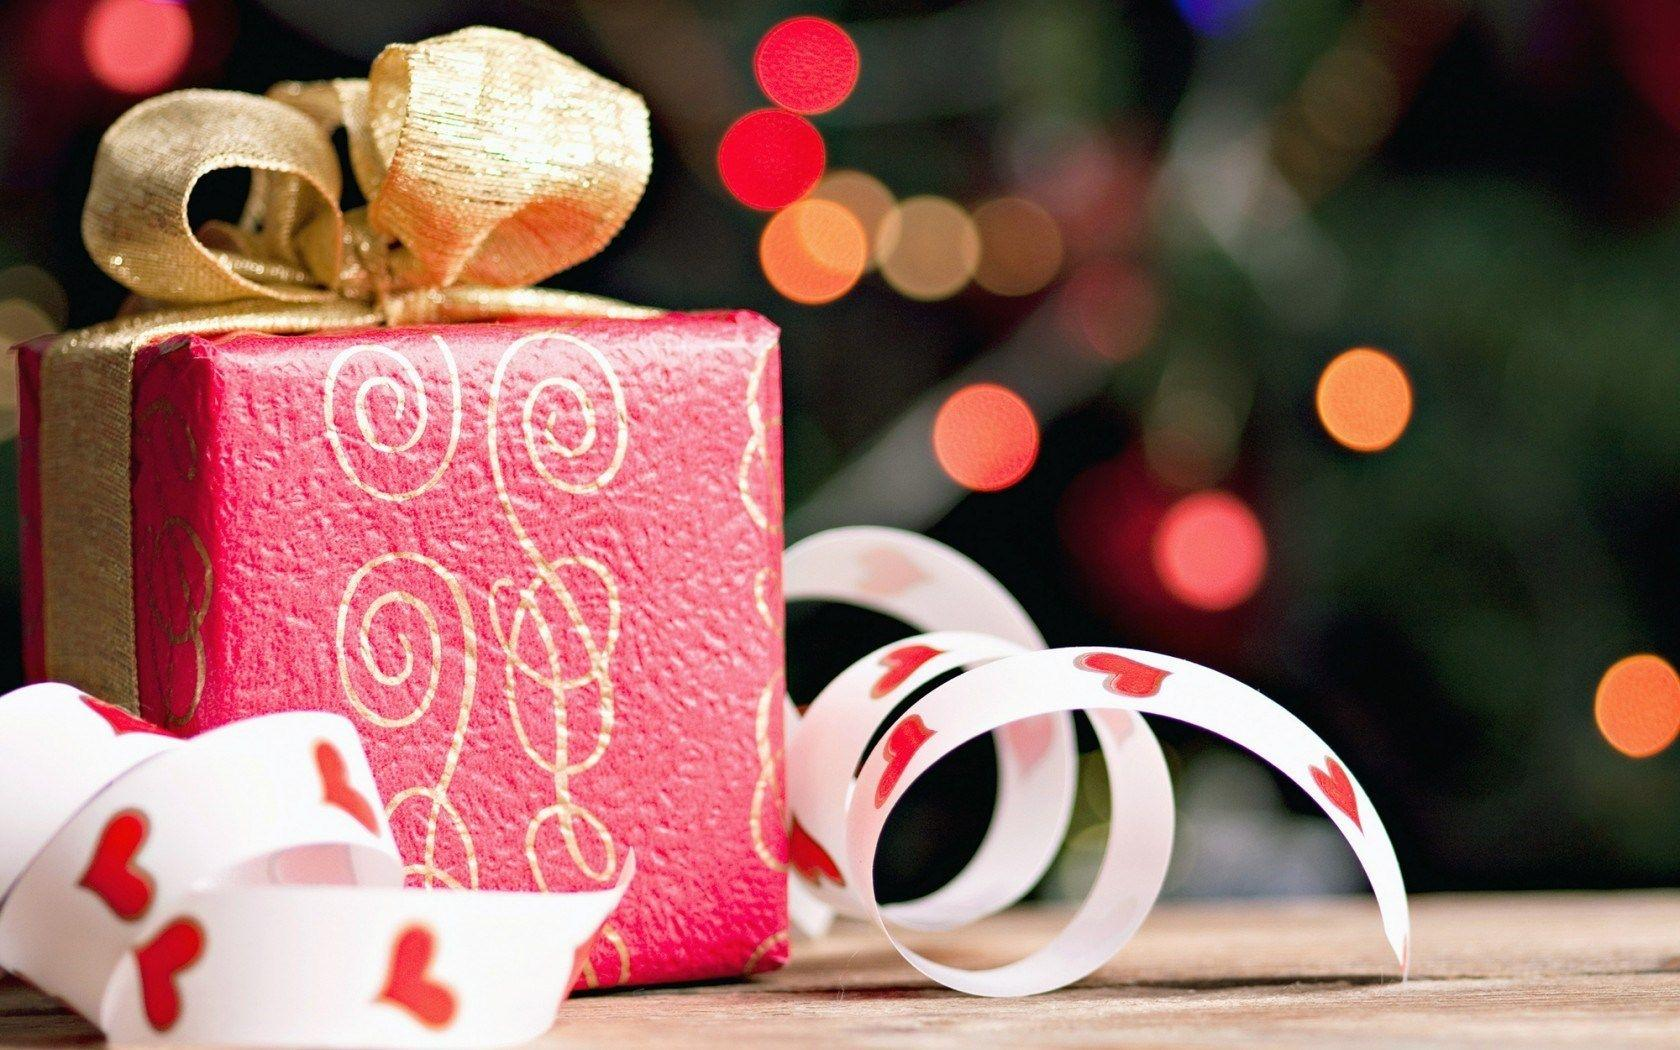 Boxes wallpapers wallpaper cave merry christmas wallpapers gift box hd desktop wallpapers 4k hd negle Gallery